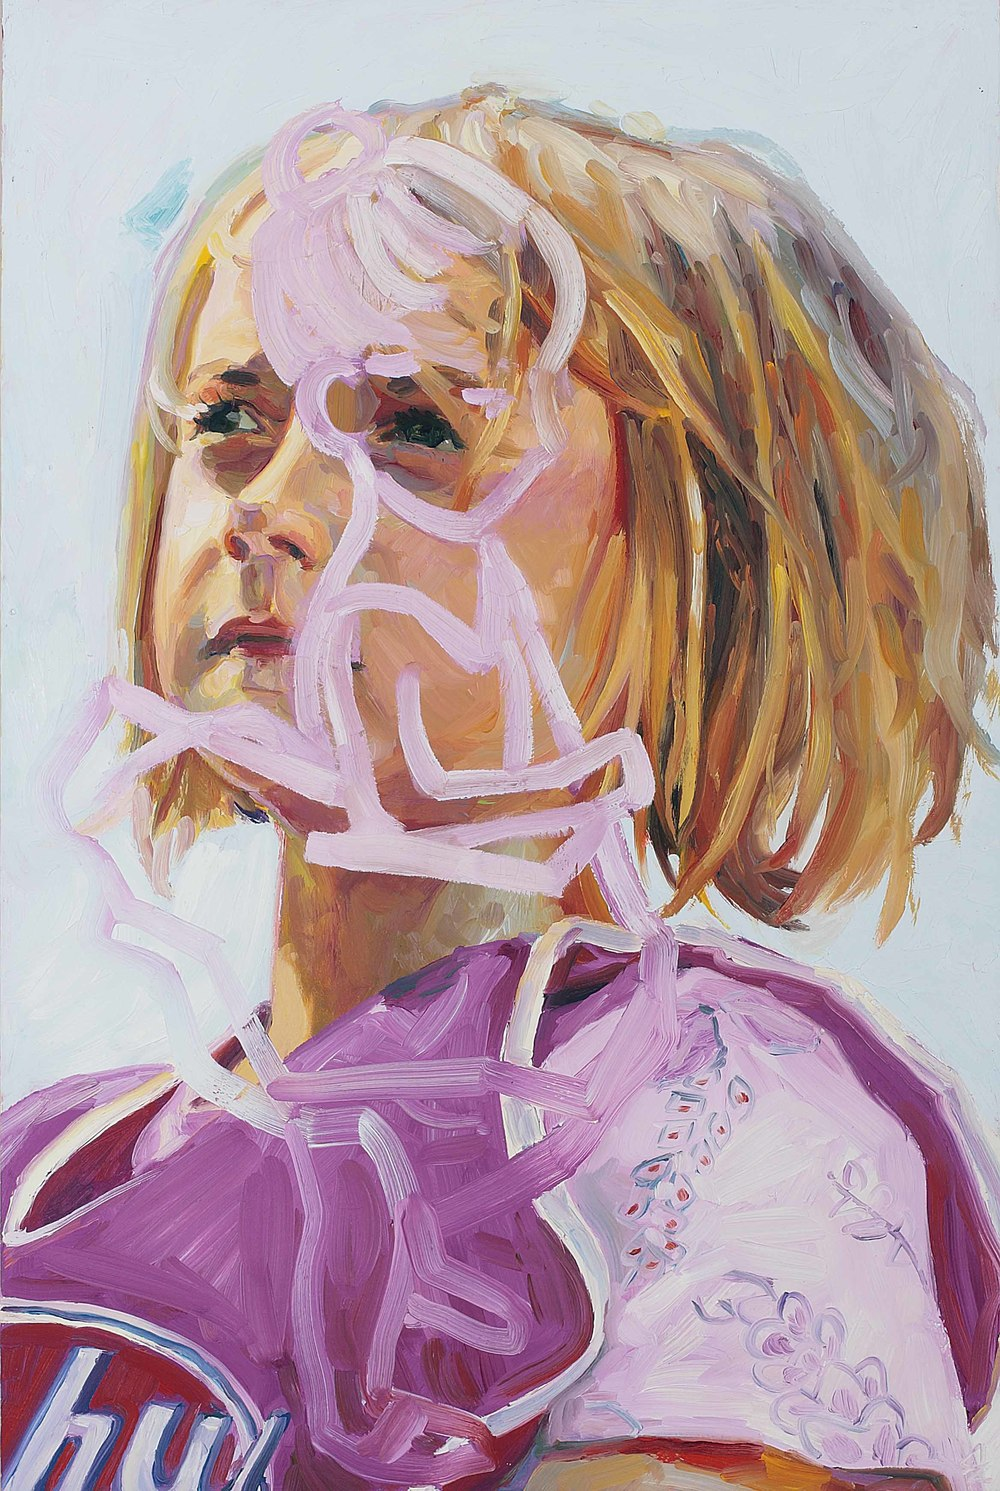 I See You (Penelope), oil on board, 60 x 40 cm, 2008.